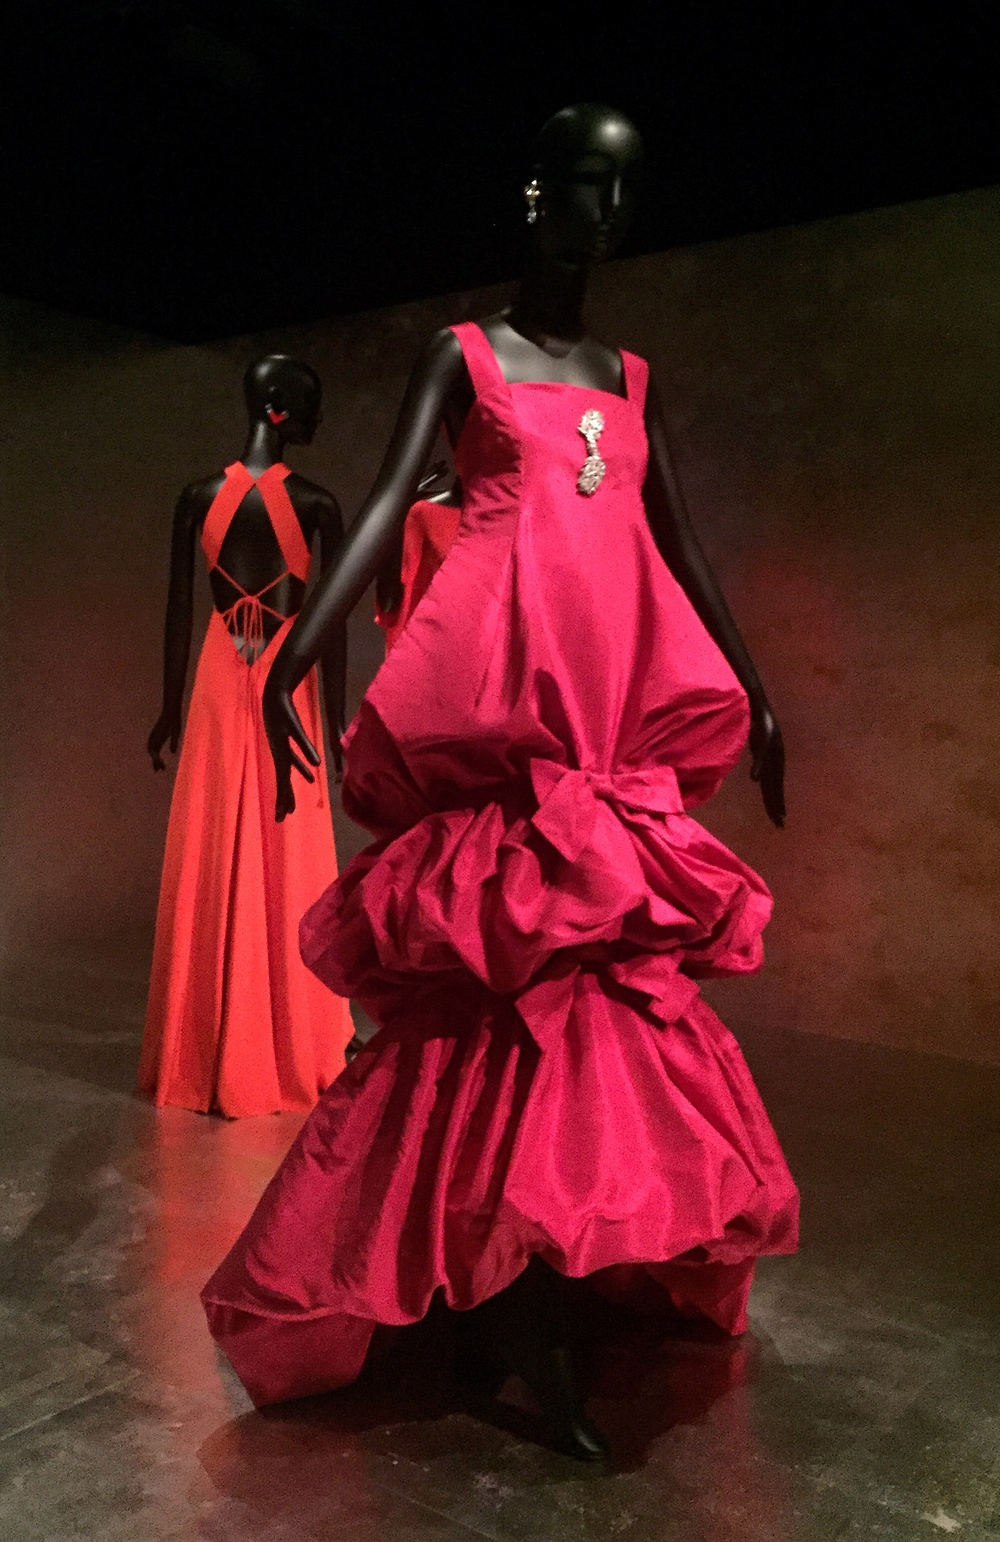 A Christian Dior haute couture gown owned by Jacqueline de Ribes.